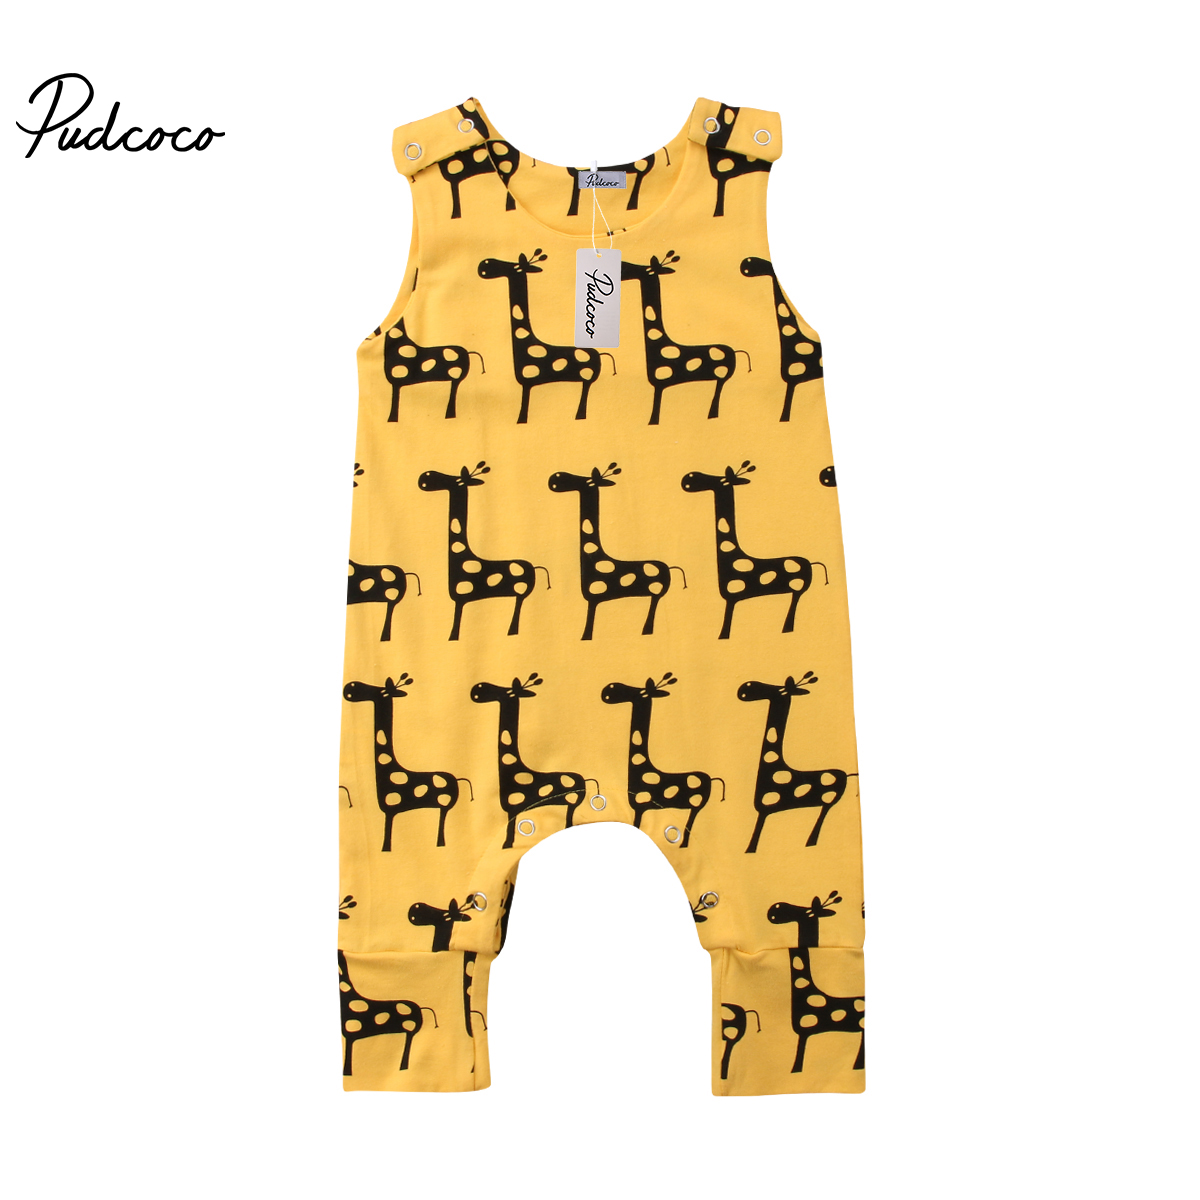 2018 Brand New 0-24M Cute Newborn <font><b>Baby</b></font> Boy Girl Sleeveless Cartoon Animal Cotton <font><b>Romper</b></font> Jumpsuit Outfits Summer Clothes image